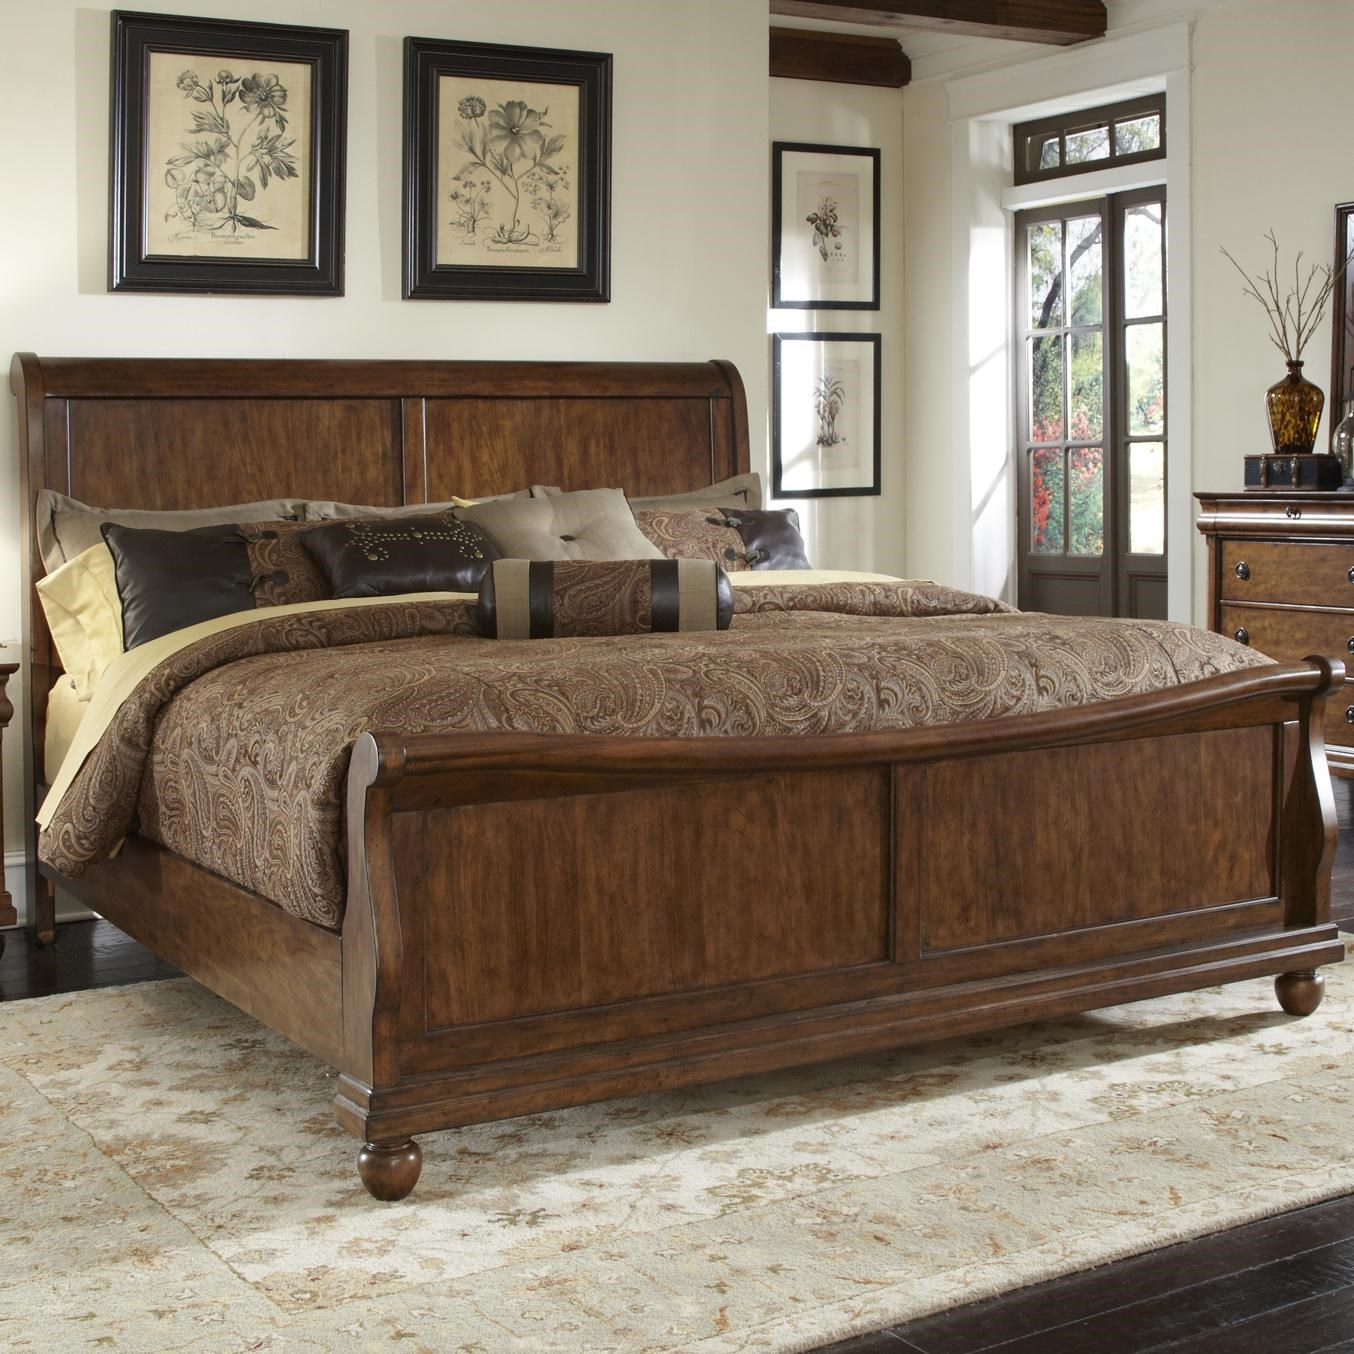 Liberty Furniture Rustic Traditions King Sleigh Bed Set With Bun Feet Royal Furniture Sleigh Beds